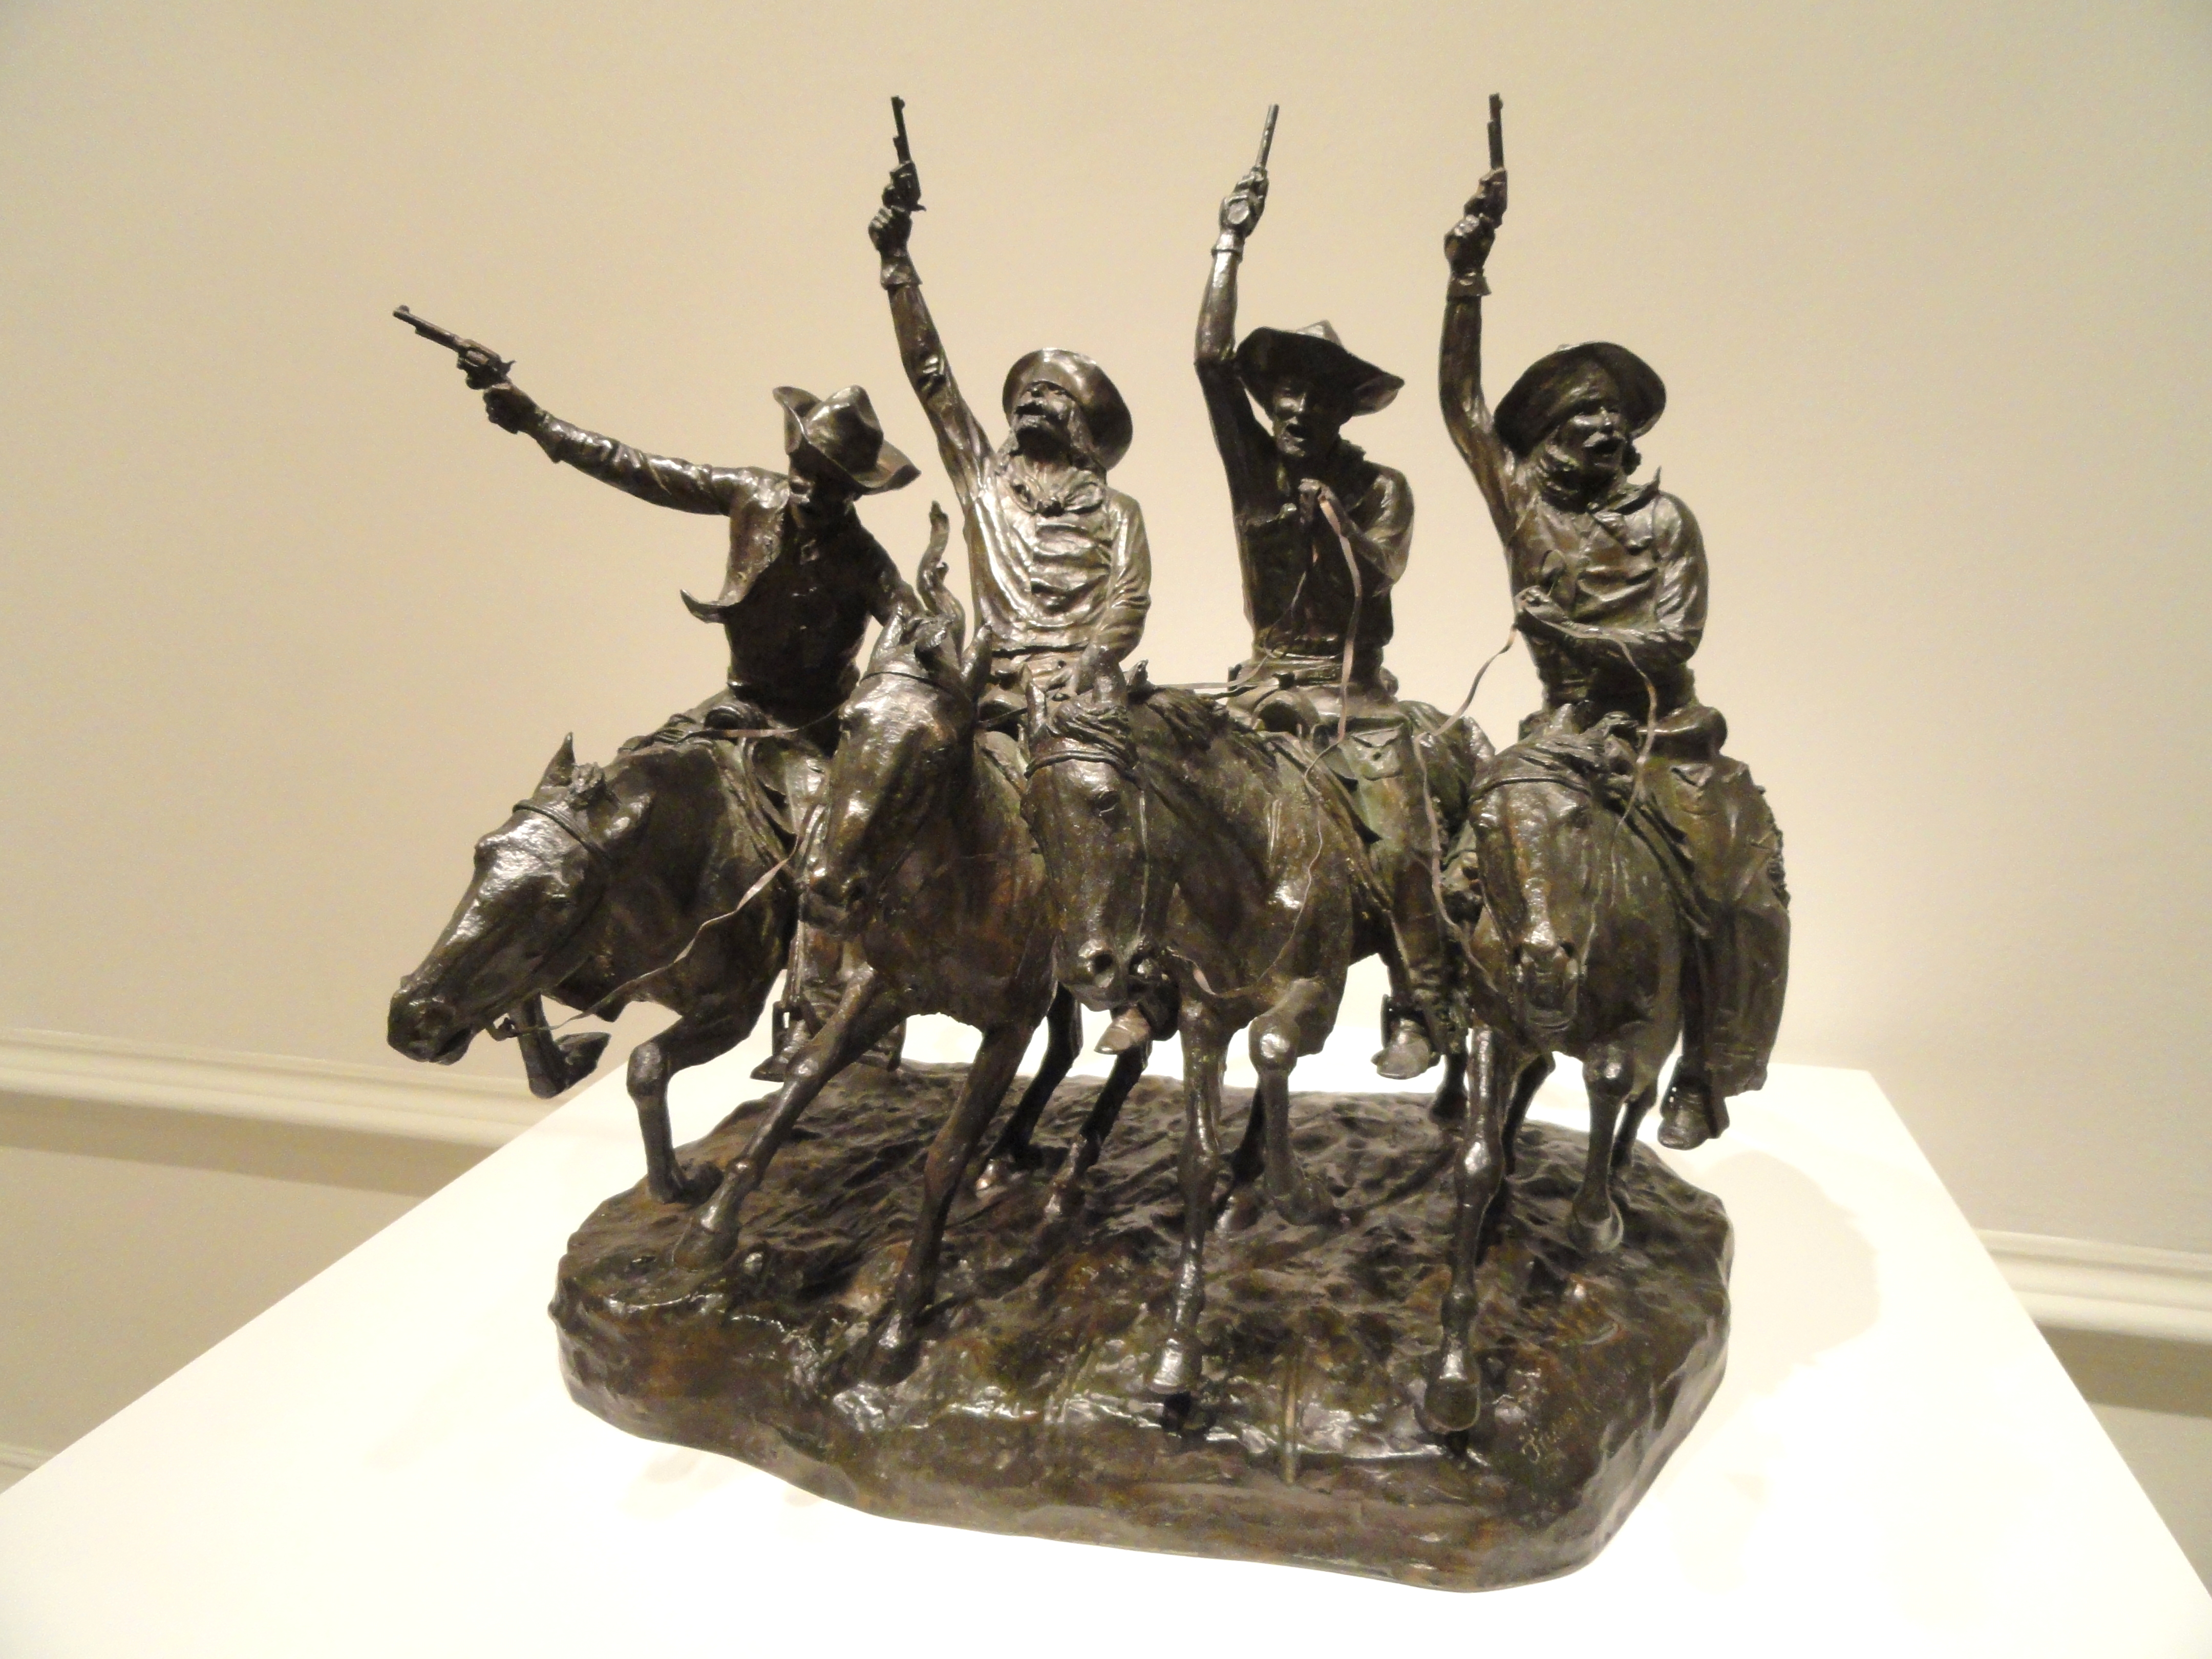 File Off The Range Coming Through The Rye By Frederic Remington Modeled 1902 Cast C 1903 Corcoran Gallery Of Art Dsc01250 Jpg Wikimedia Commons